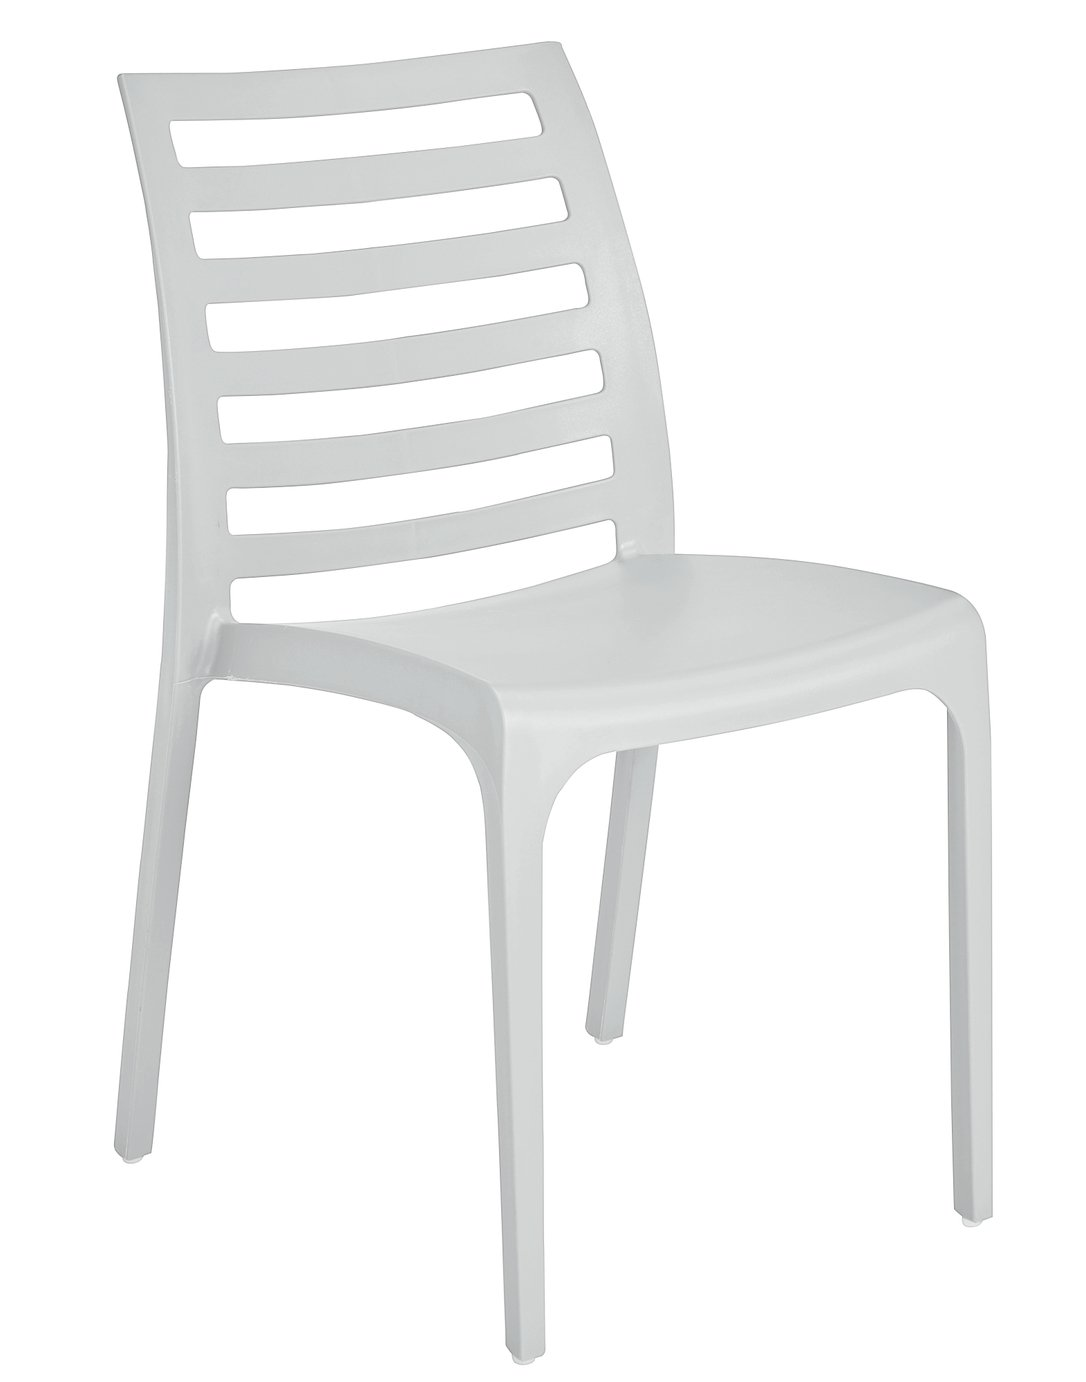 Hygena Stakk Plastic Chair - White